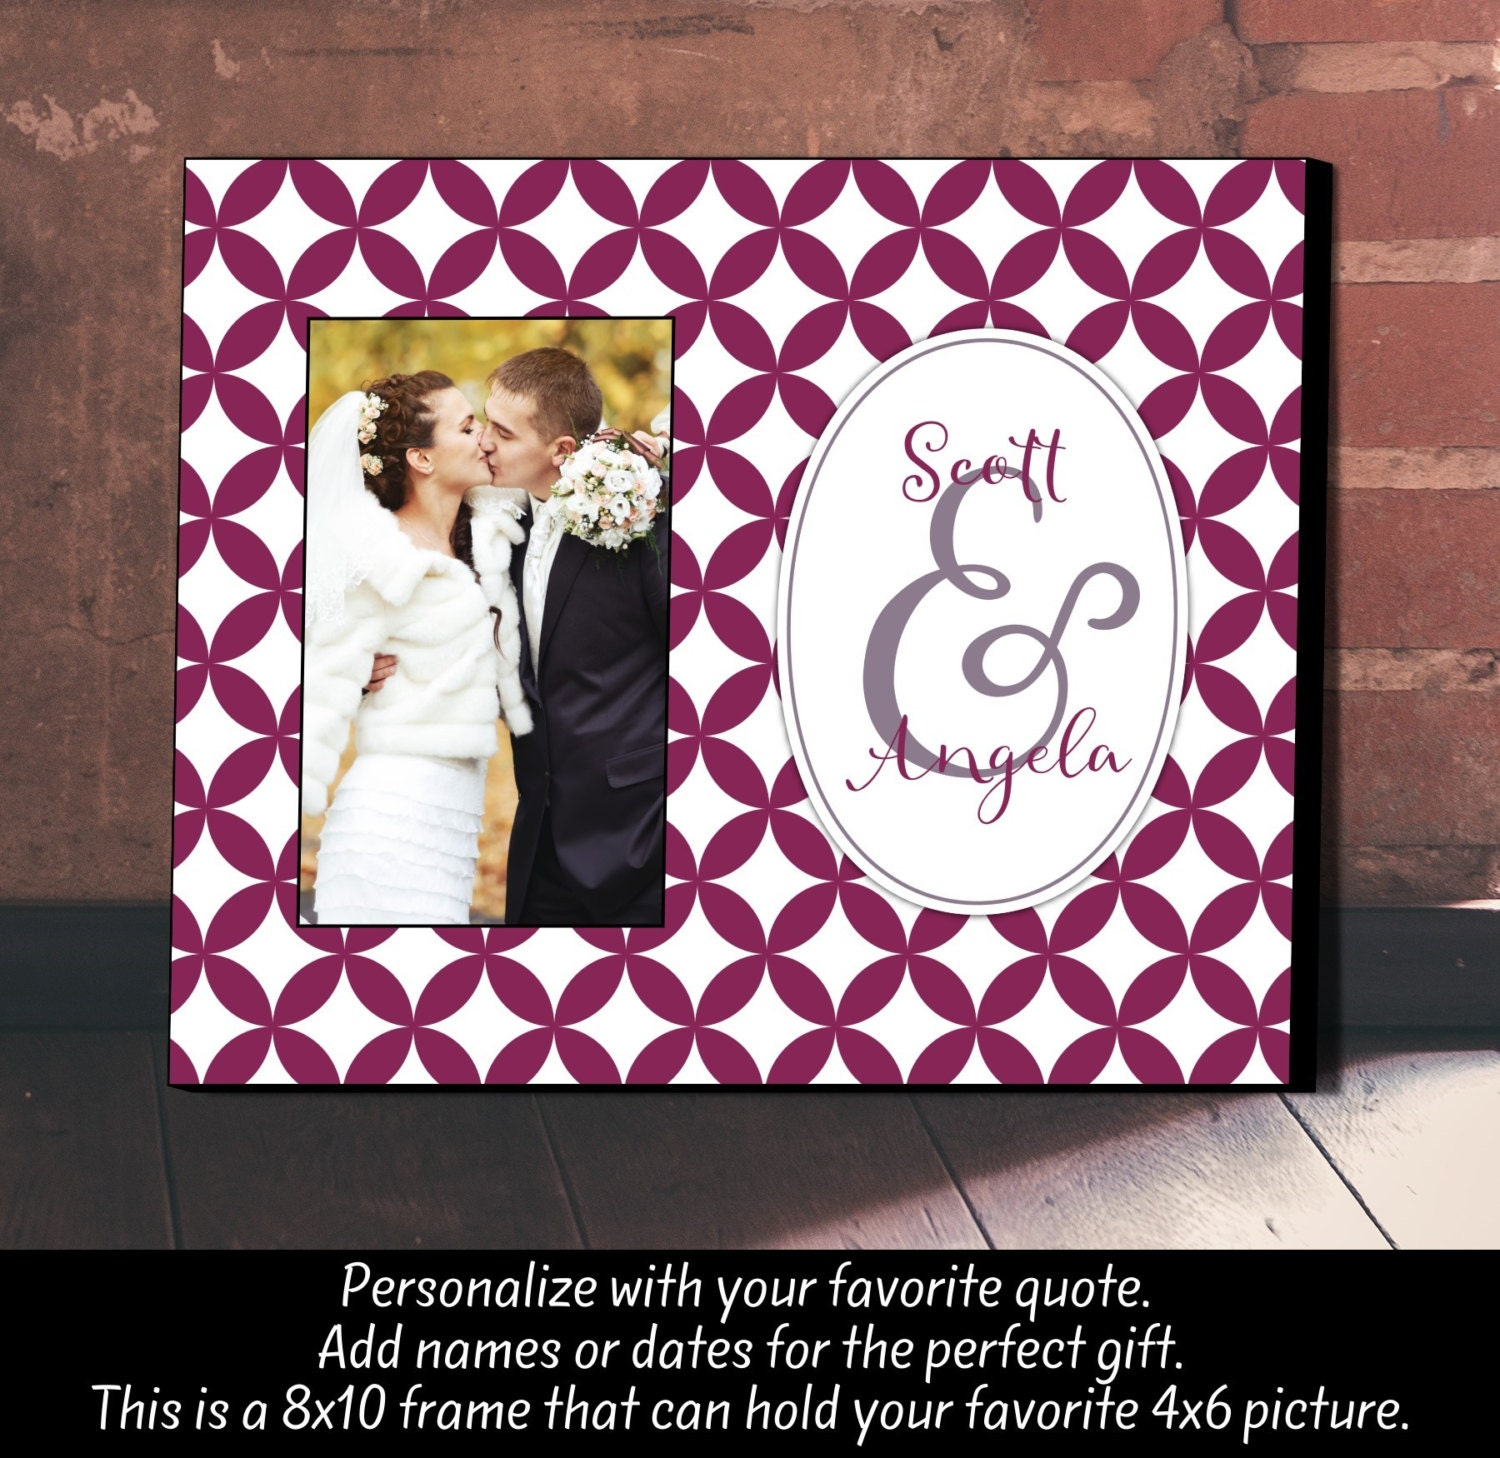 Wedding Gift Personalized Picture Frame : Personalized Picture Frame Wedding Gift Anniversary Gift